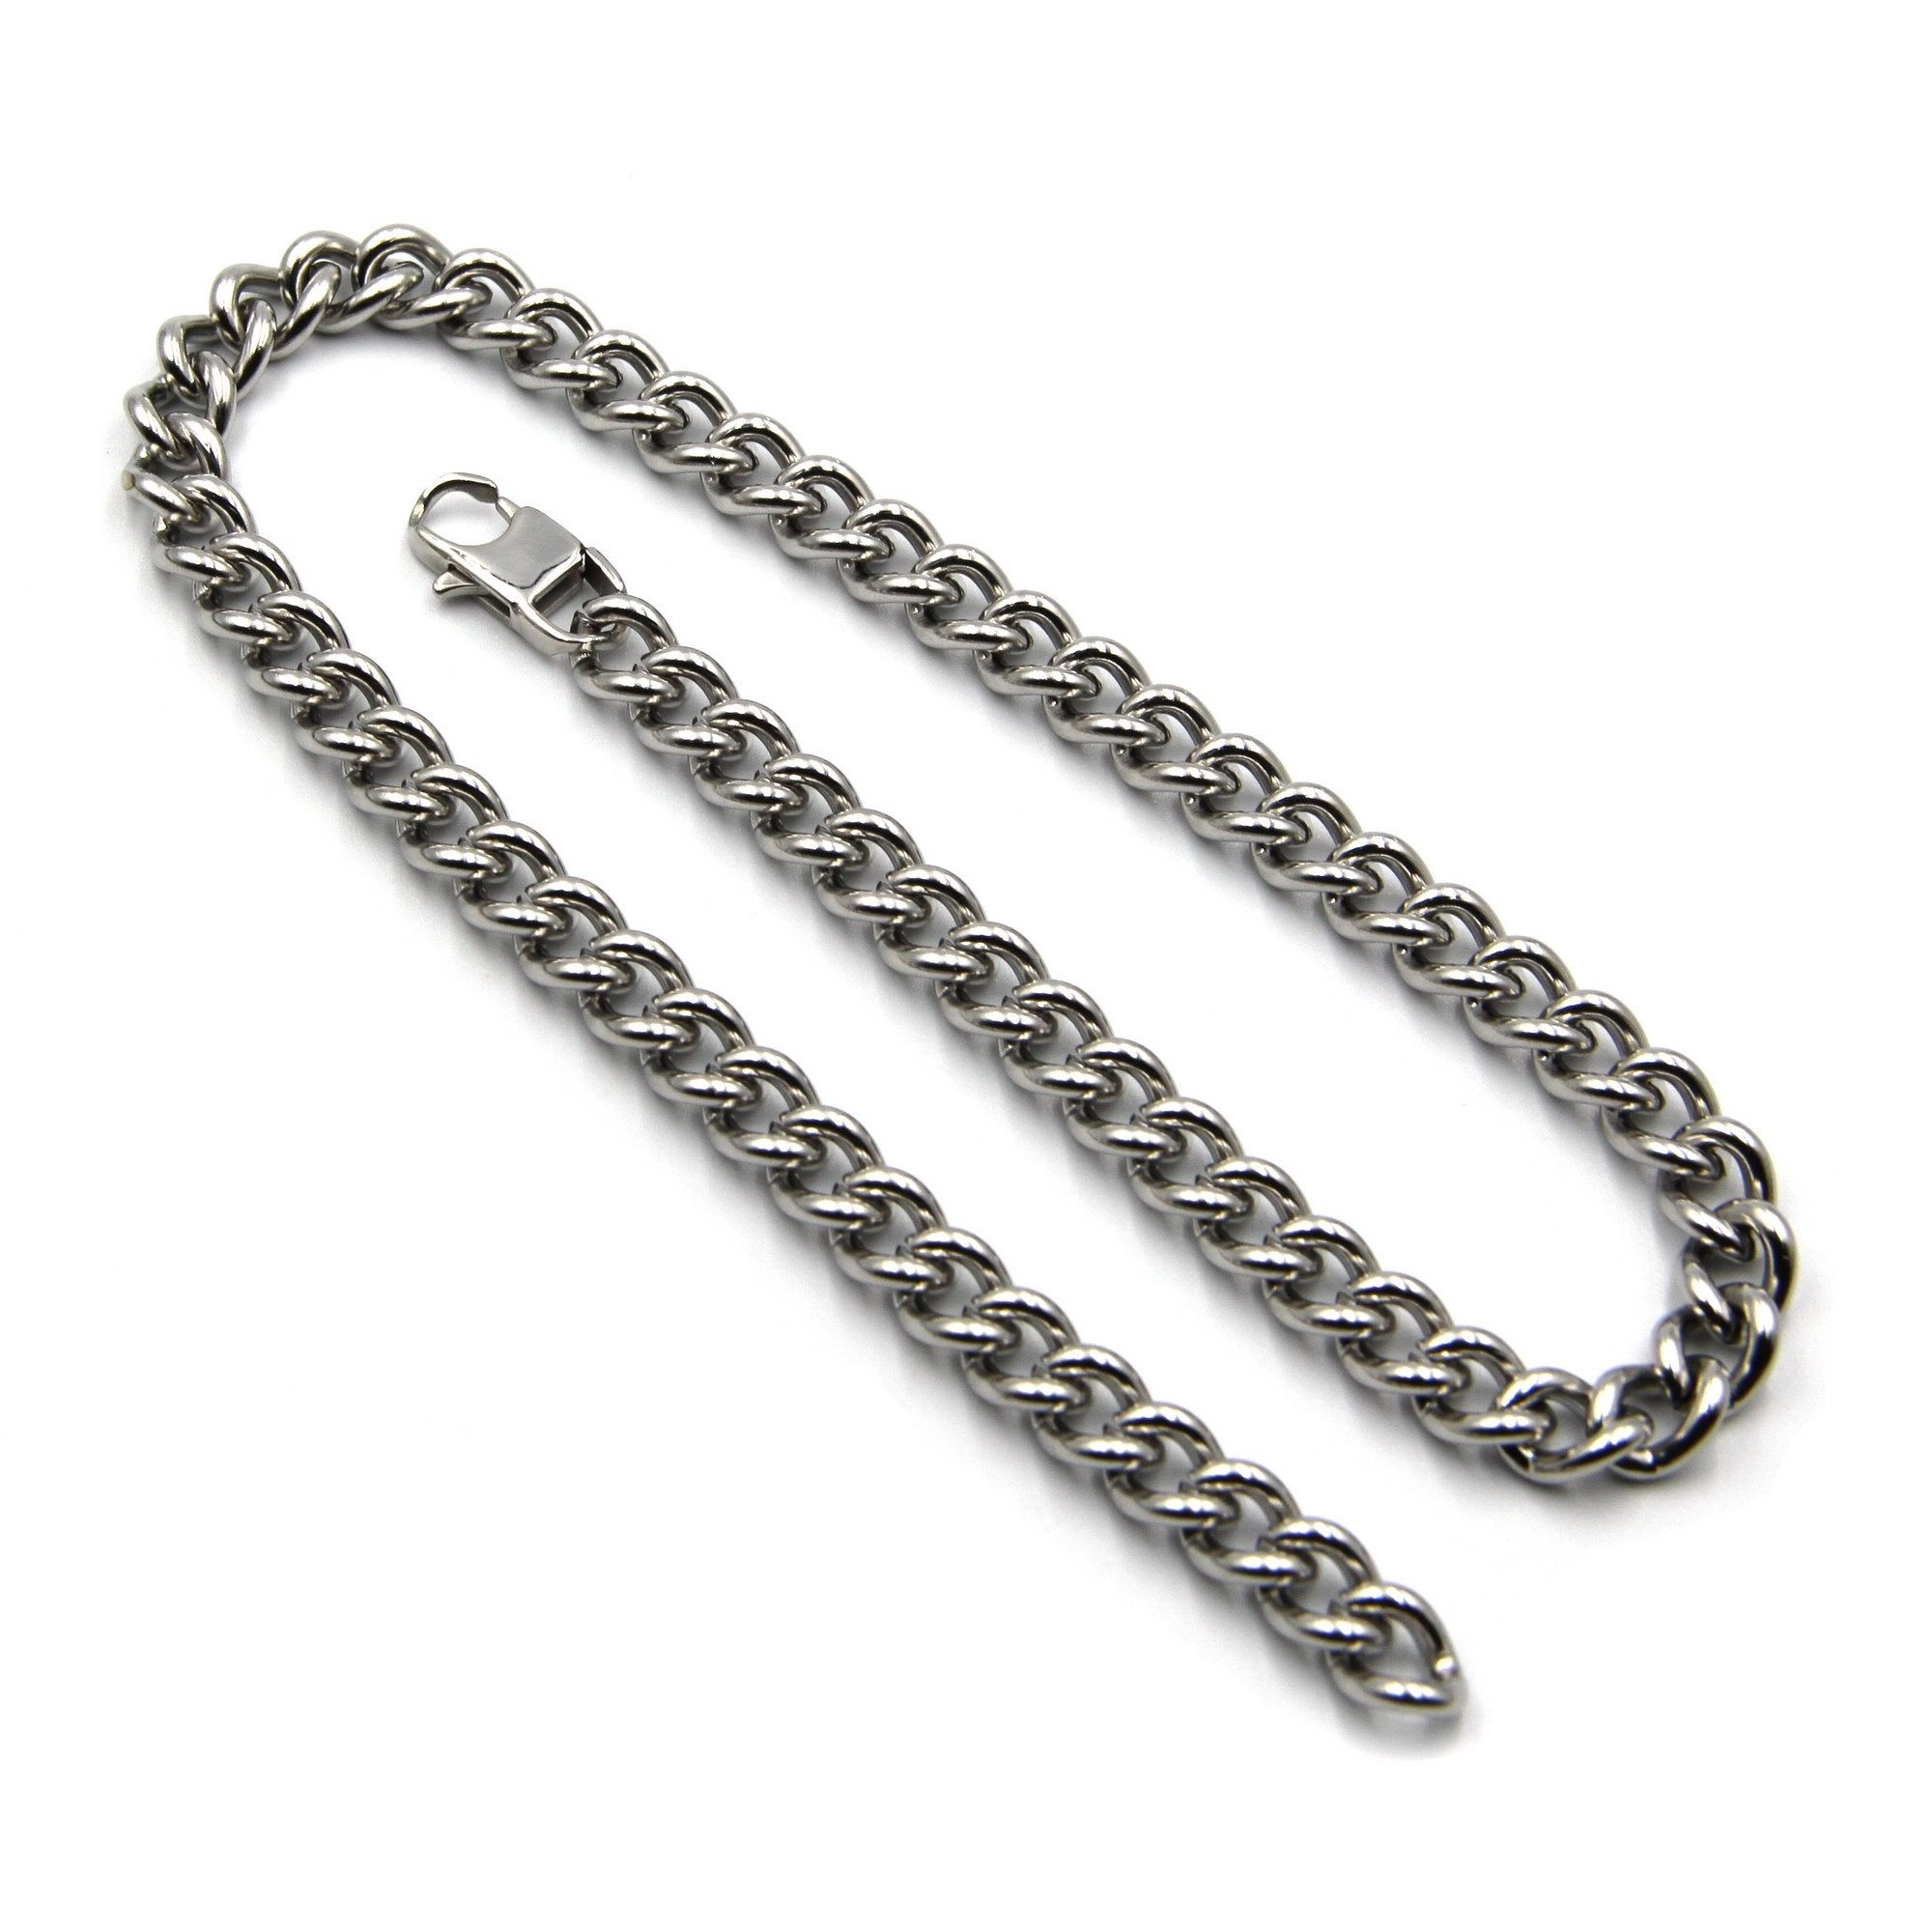 Stainless steel jewelry chain Mens stainless steel necklace - Metal Field